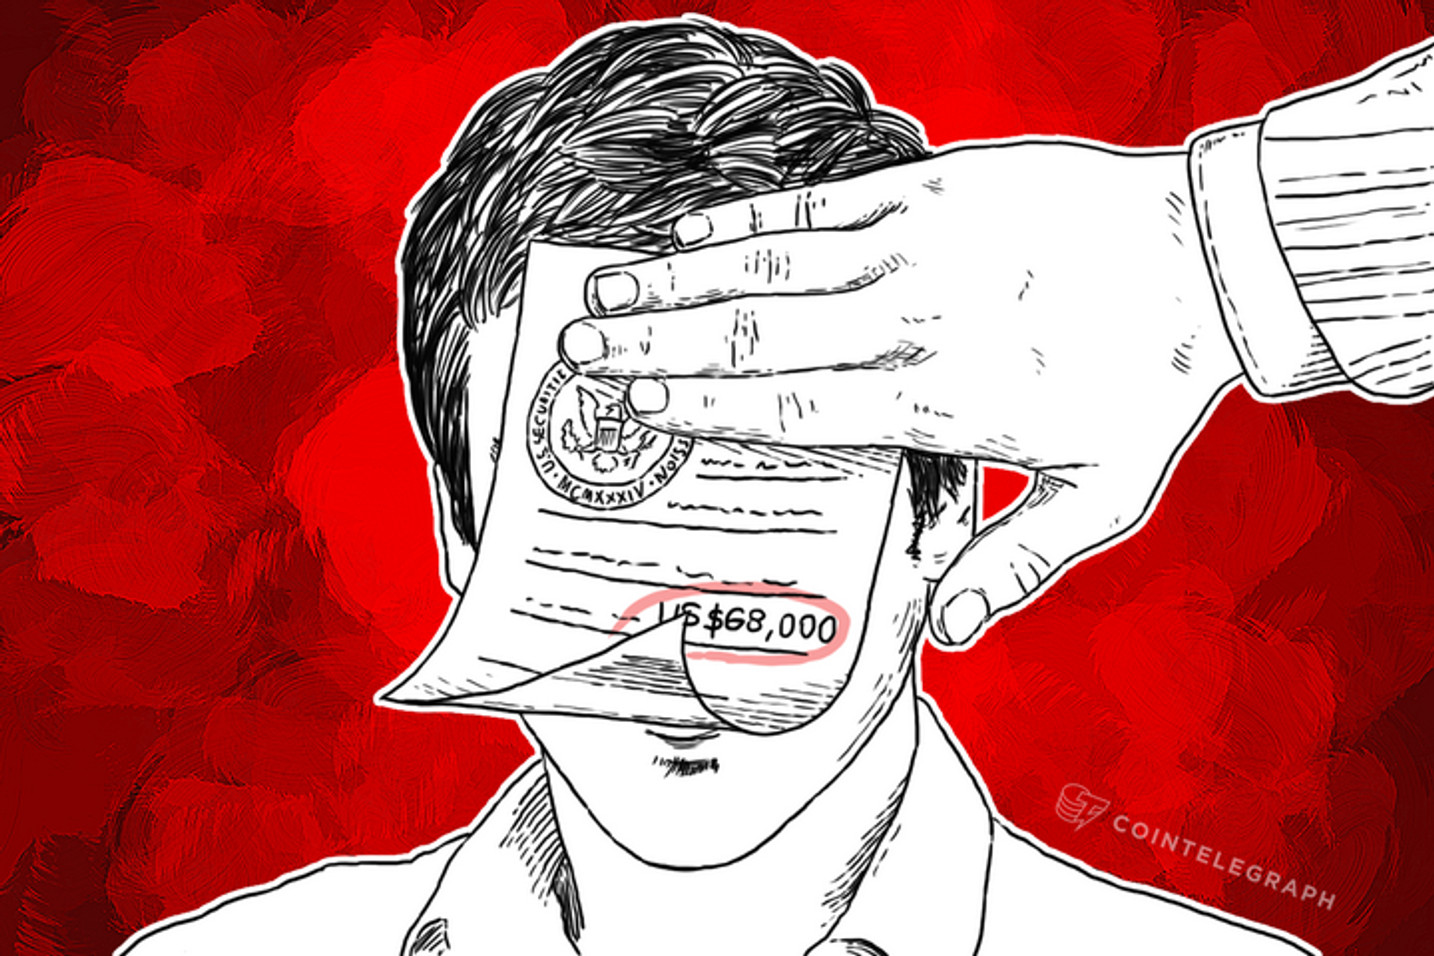 SEC Fines Operator of Two Cryptocurrency Exchanges That Shut Down in 2013